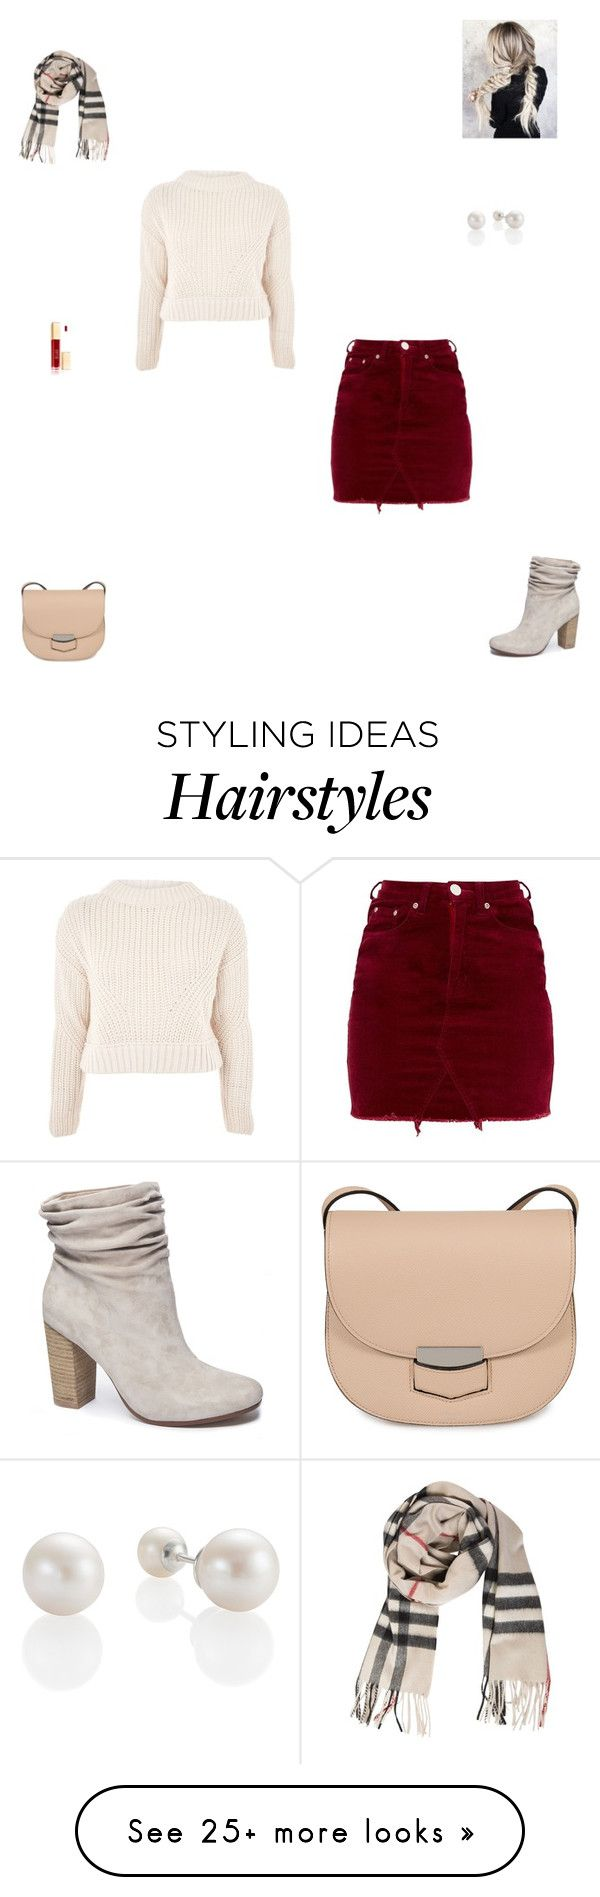 """December"" by synclairel on Polyvore featuring Topshop, Chinese Laundry, Burberry, CÉLINE, Fall, cute, casual and ootd"